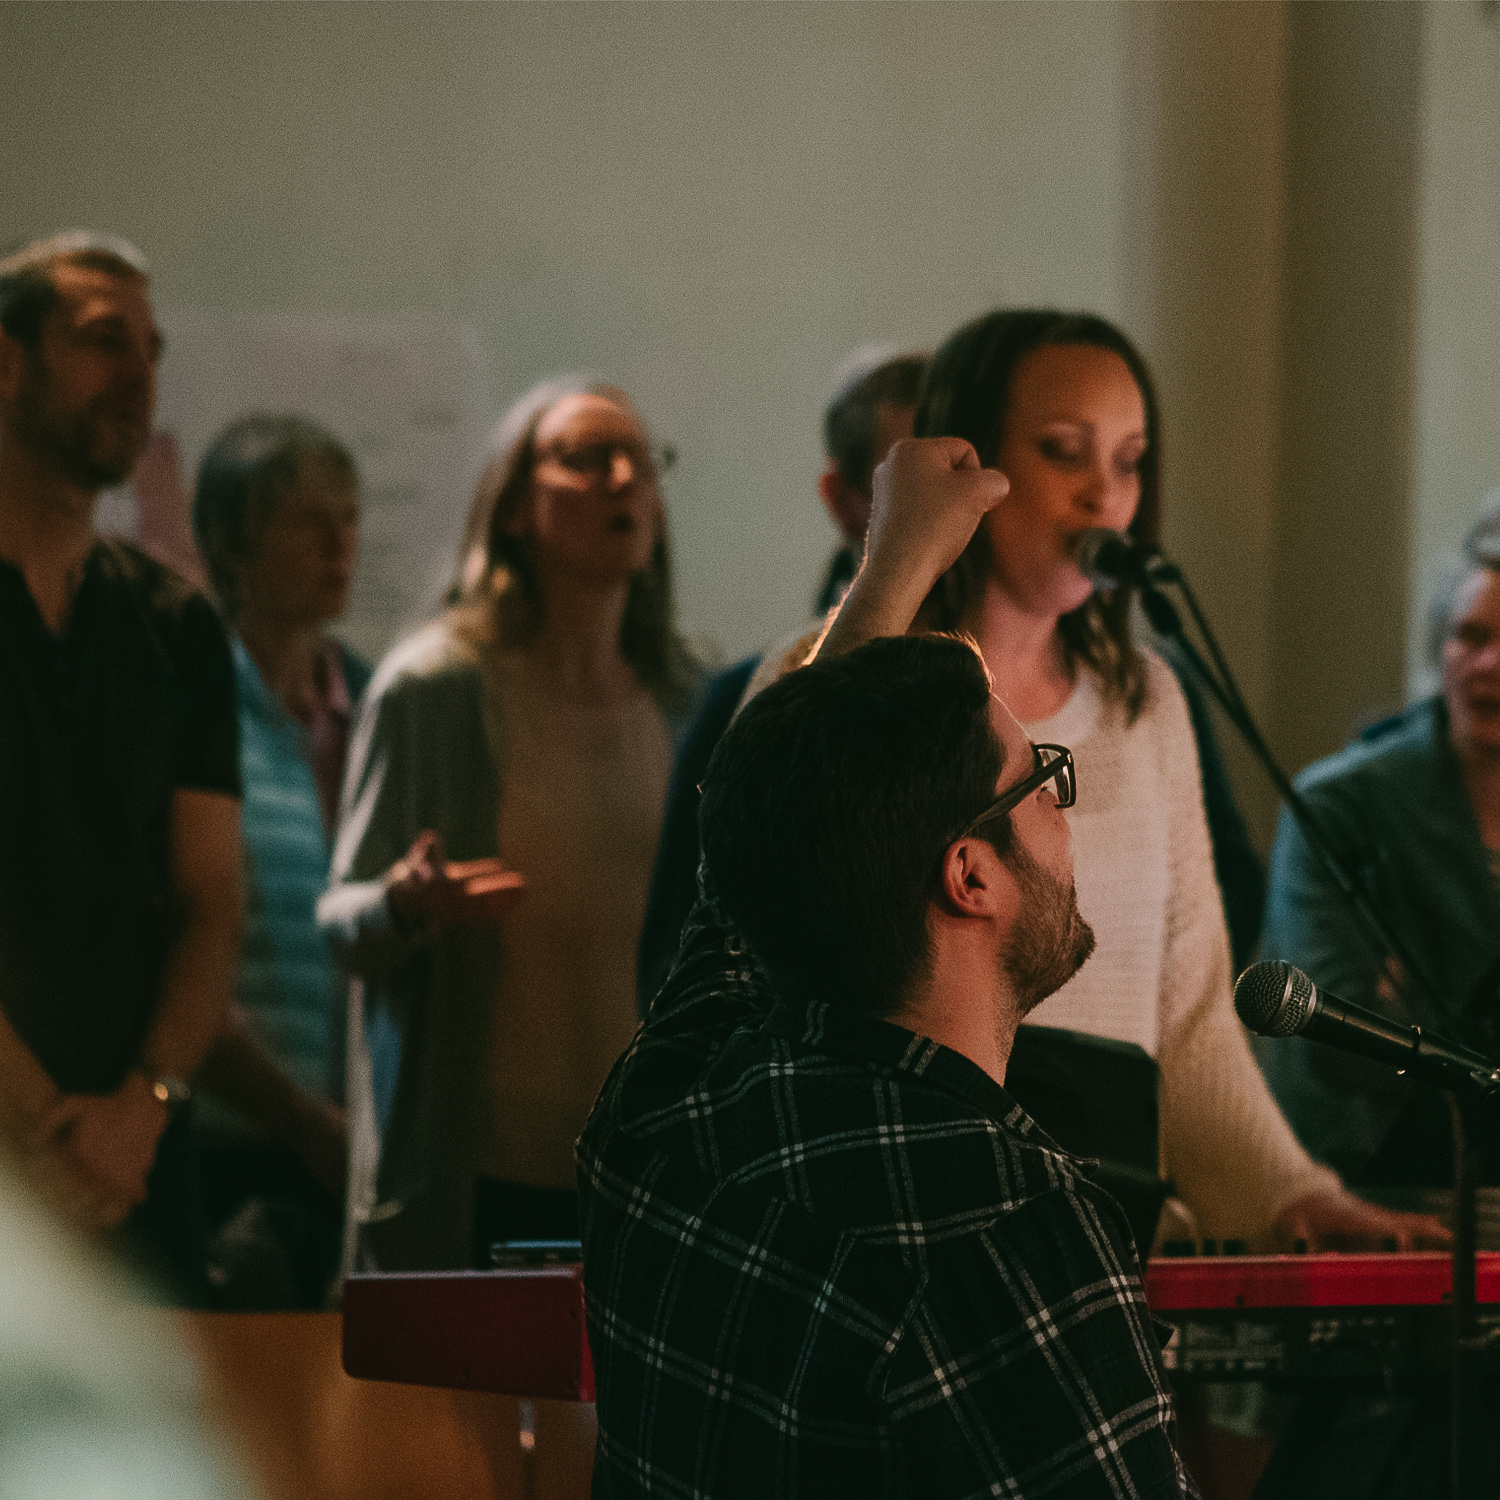 Sundays - 16.00 & 18.00 | Lordswood Girls' SchoolThe best place to meet other students is at our 18.00 gathering. Our Sunday evenings are packed with worship, teaching, and a space to engage with God on whatever level you feel comfortable with. We also have a gathering at 16.00, which has a great mix of all generations.